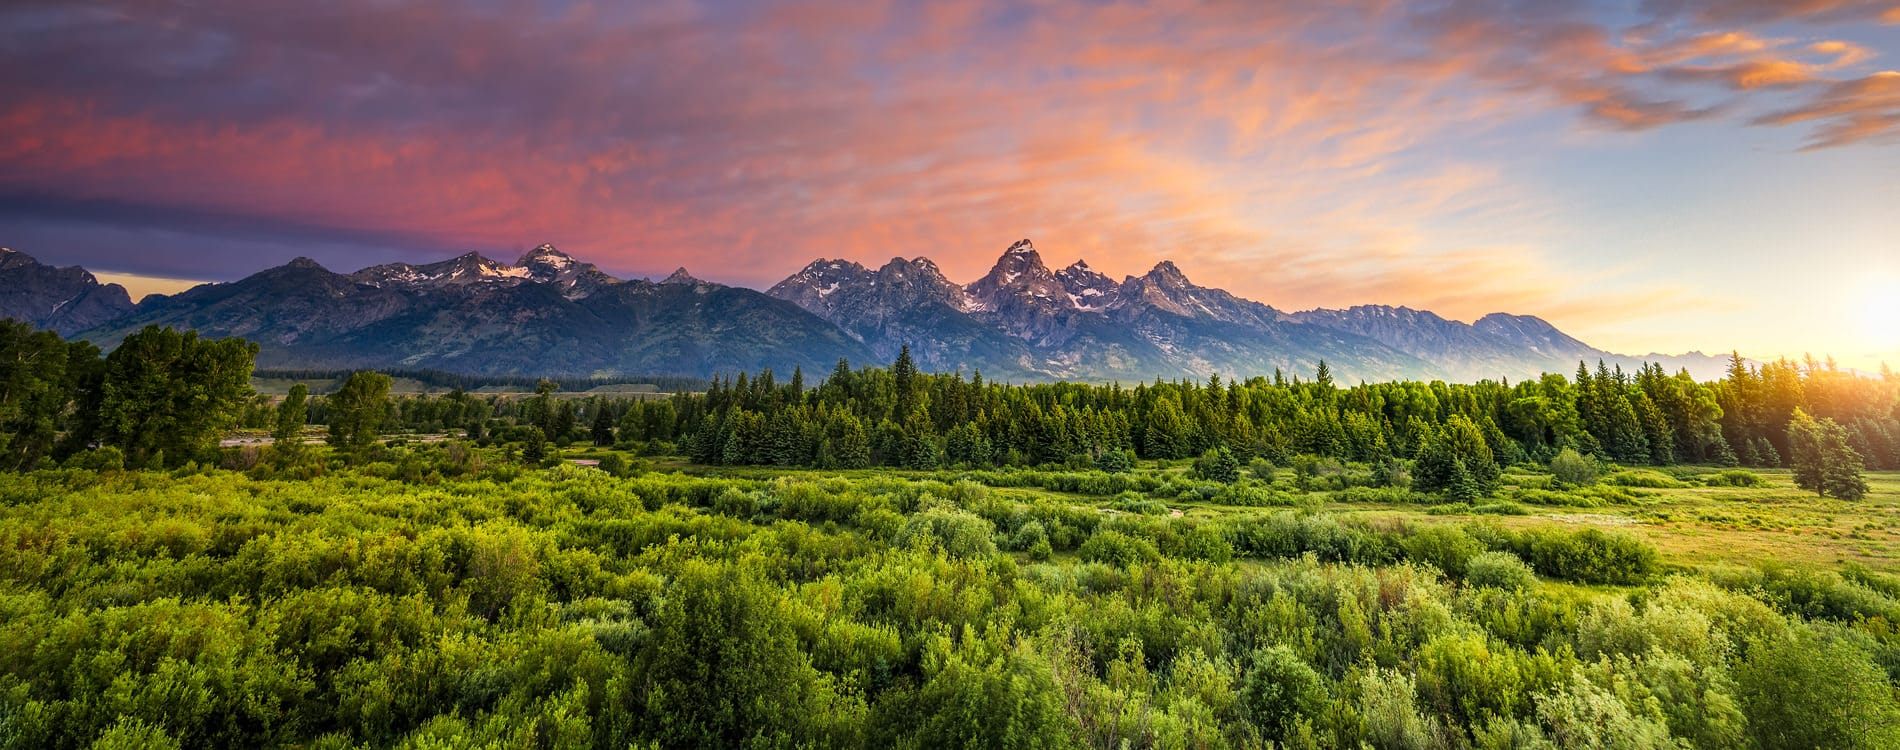 Sunrise at Blacktail Ponds Overlook toward Grand Teton Range